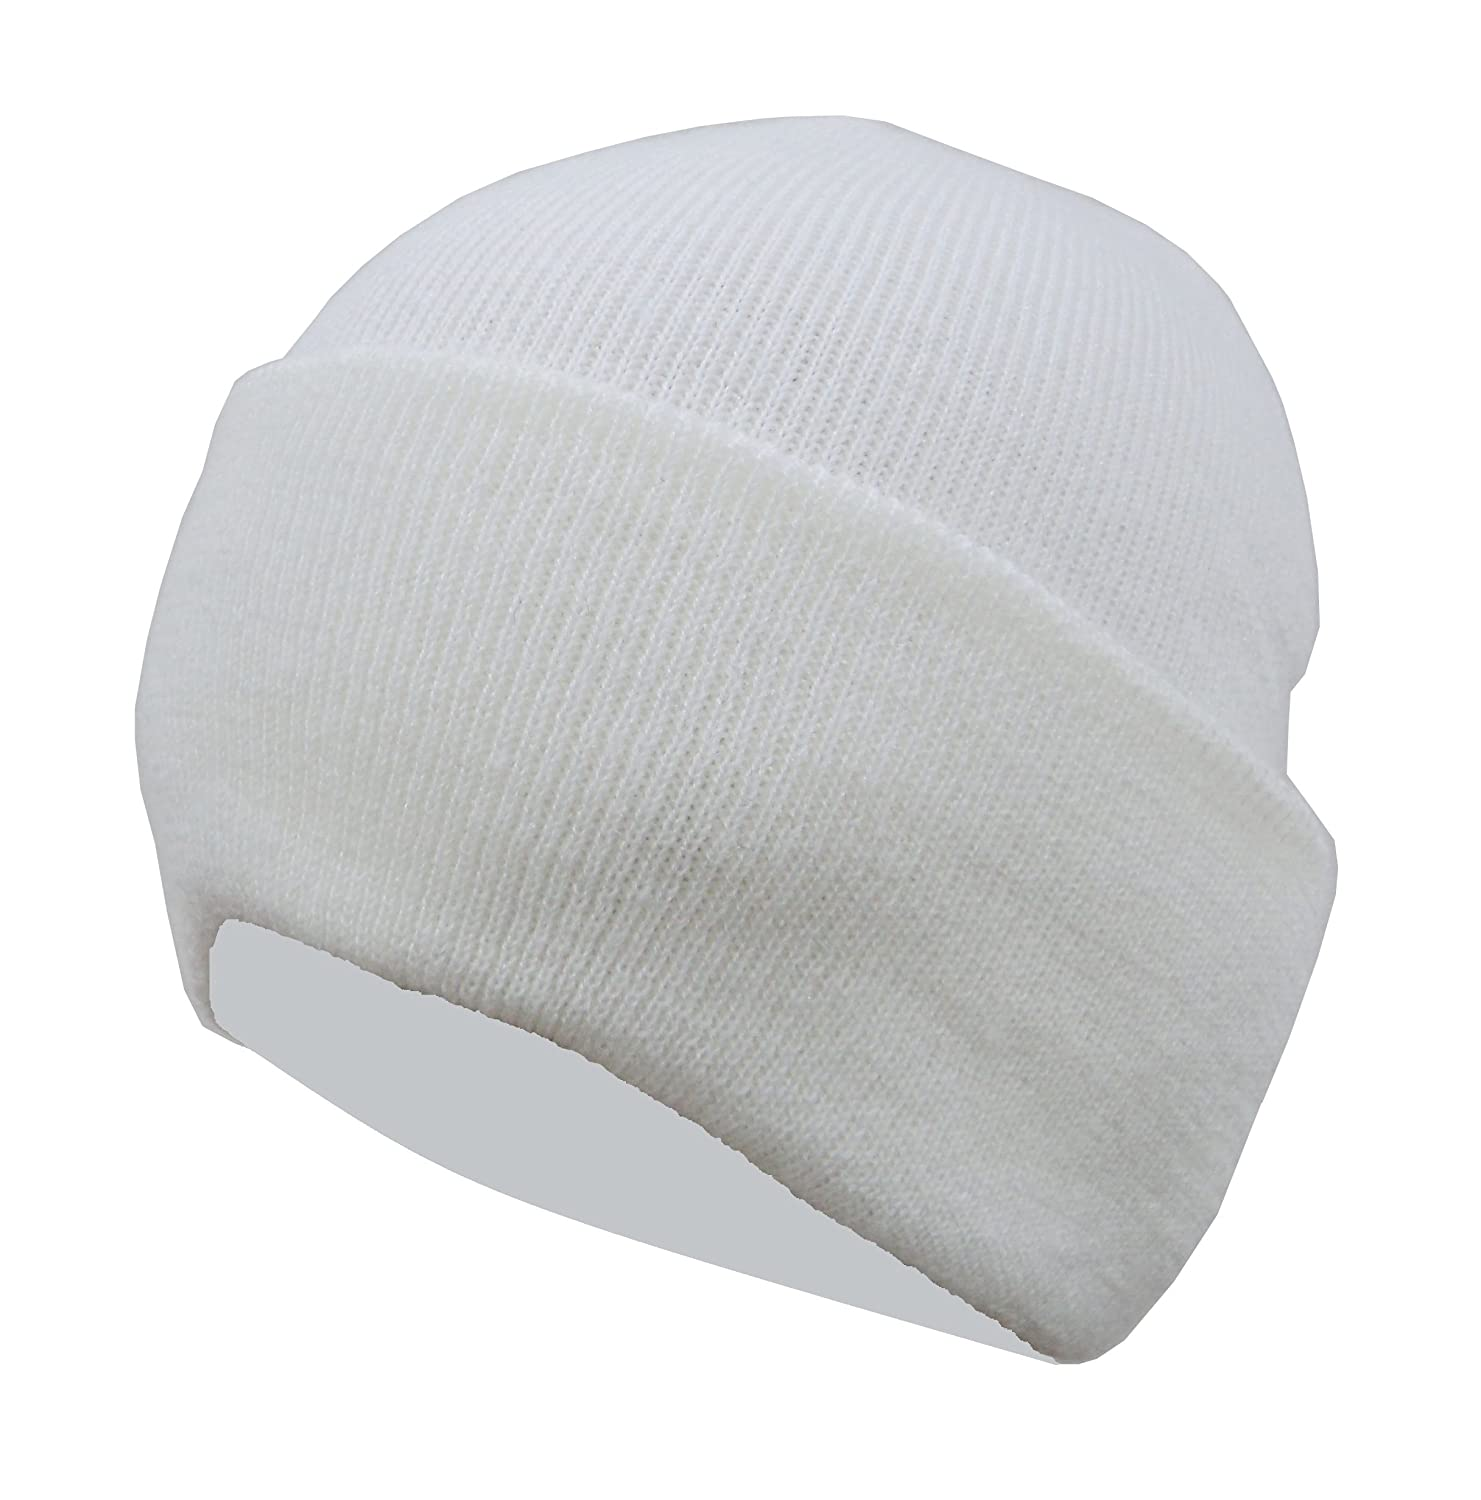 c0f8c1fcd64 Gajraj Men s Woolen Skull Cap (White)  Amazon.in  Clothing   Accessories